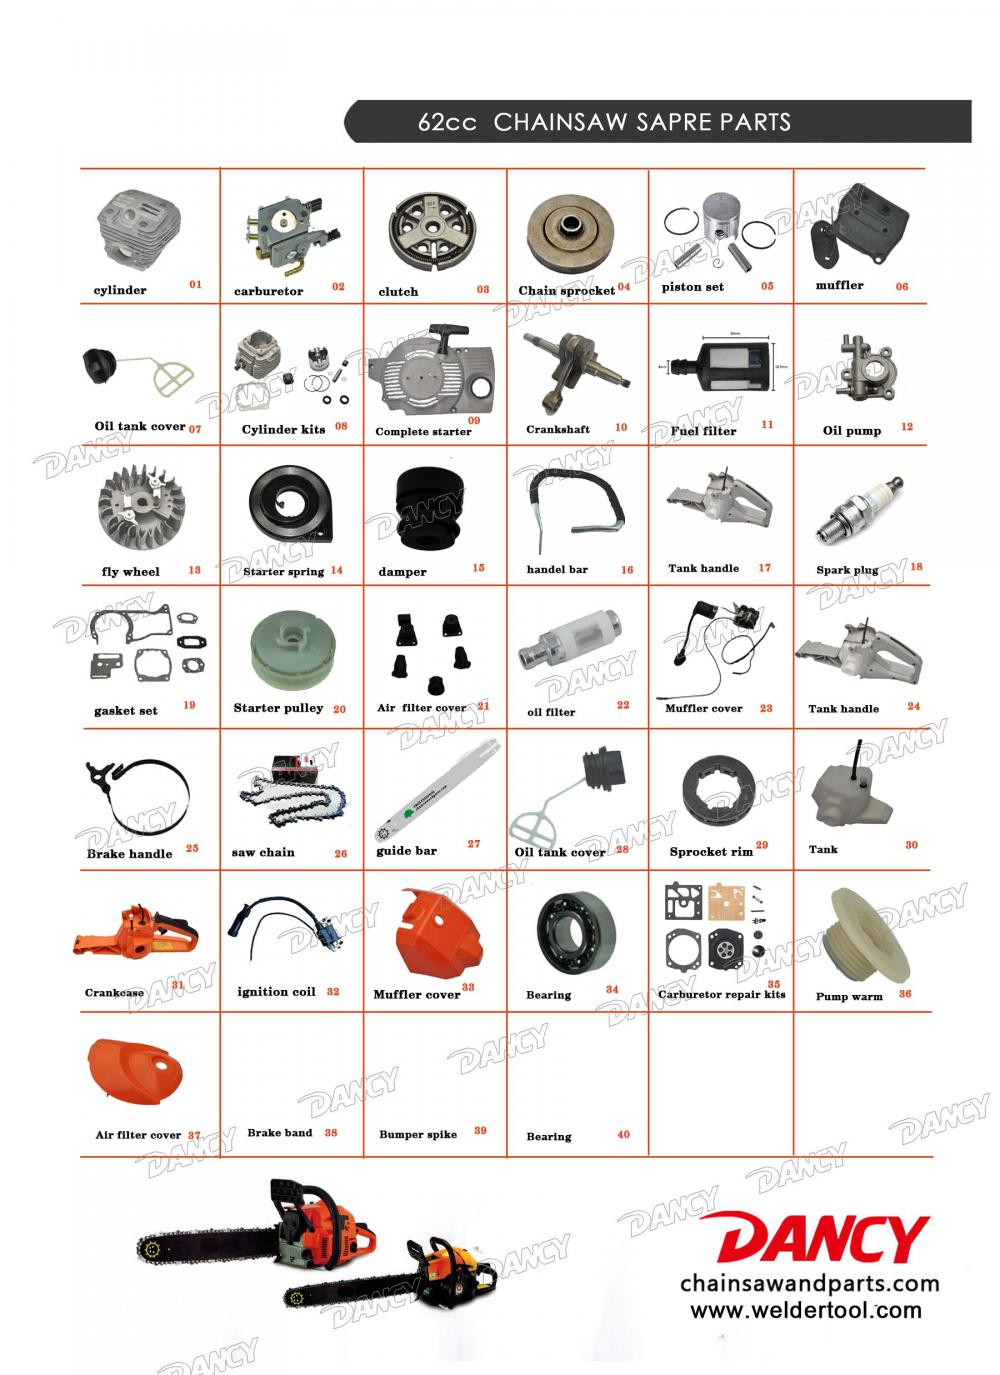 62cc chainsaw catalogue